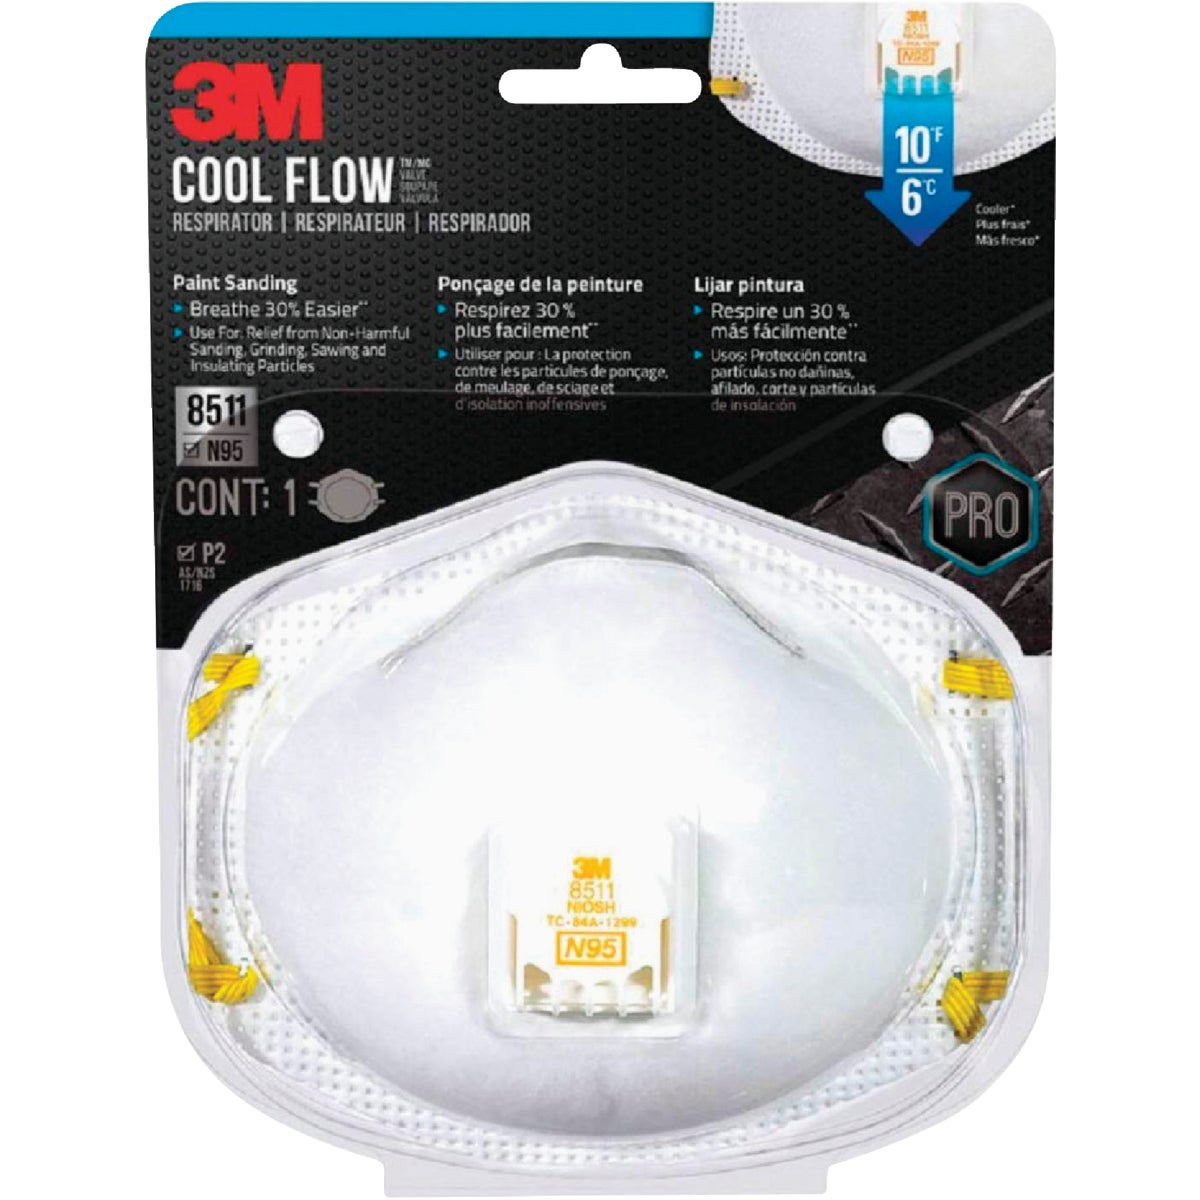 SANDING RESPIRATOR - 8511PA1-A by 3m Co